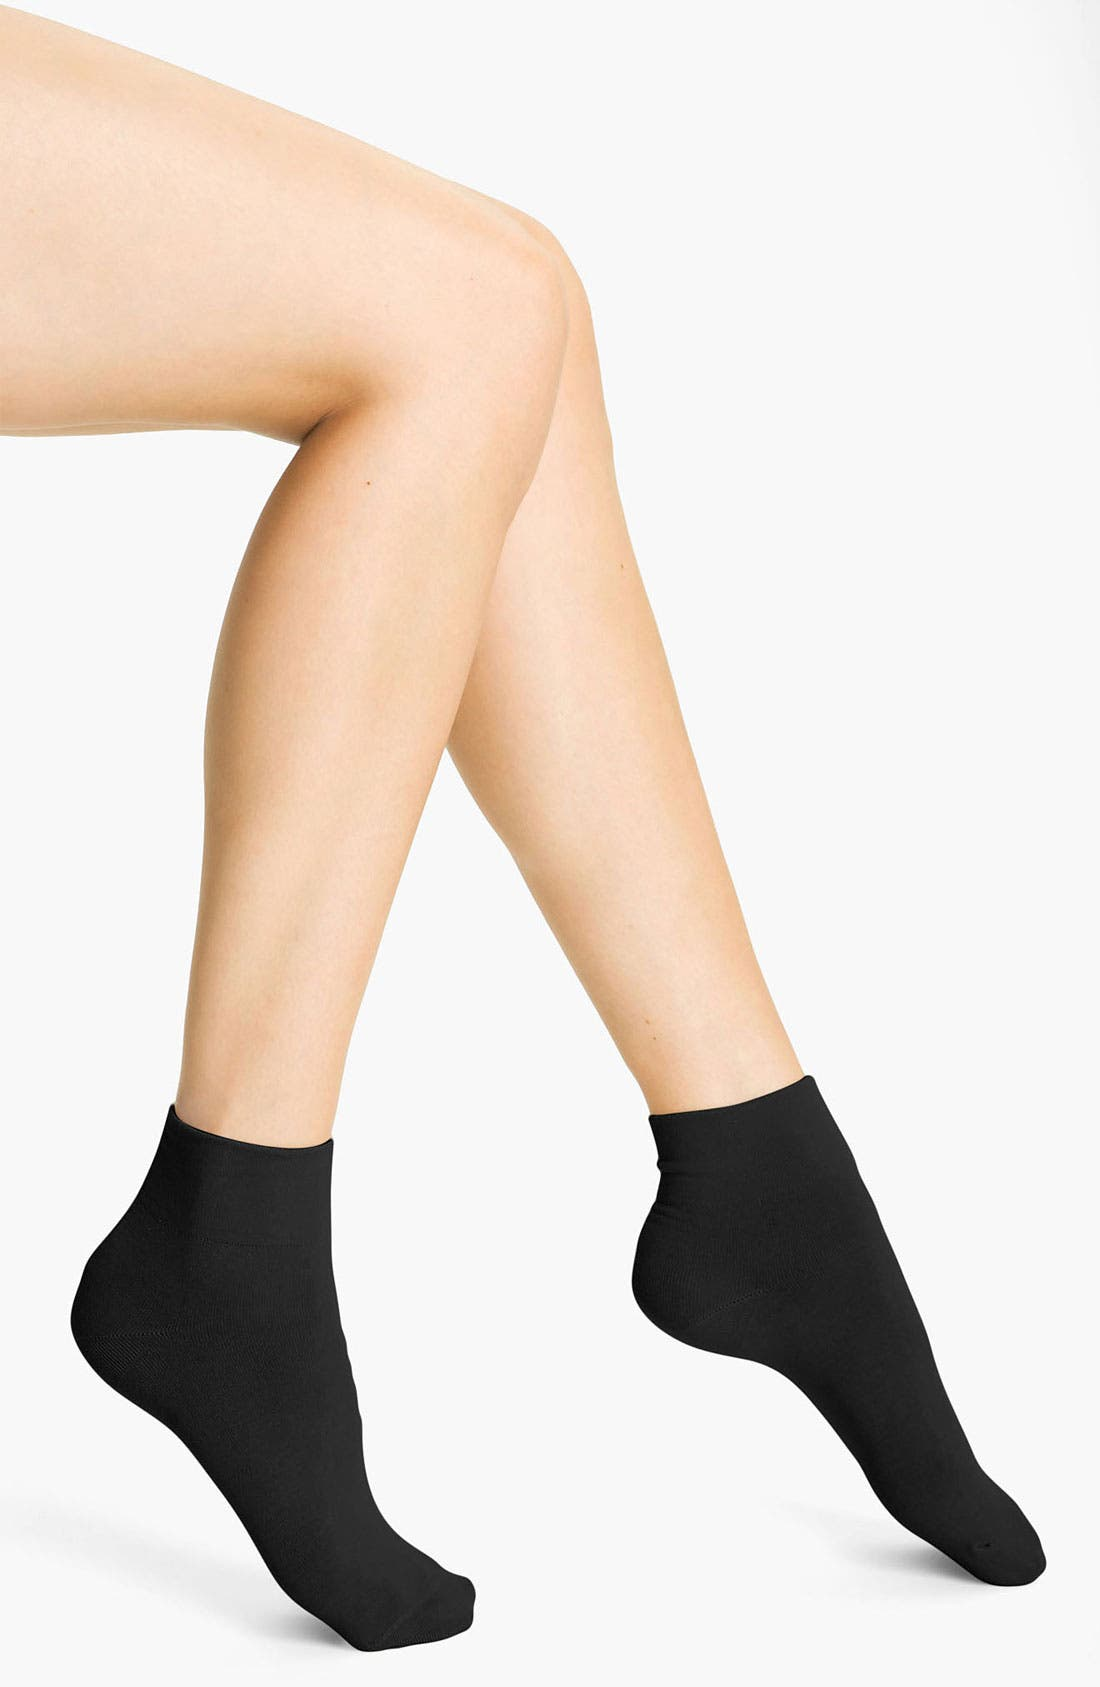 Main Image - Hue 'Cotton Body' Socks (3 for $18)